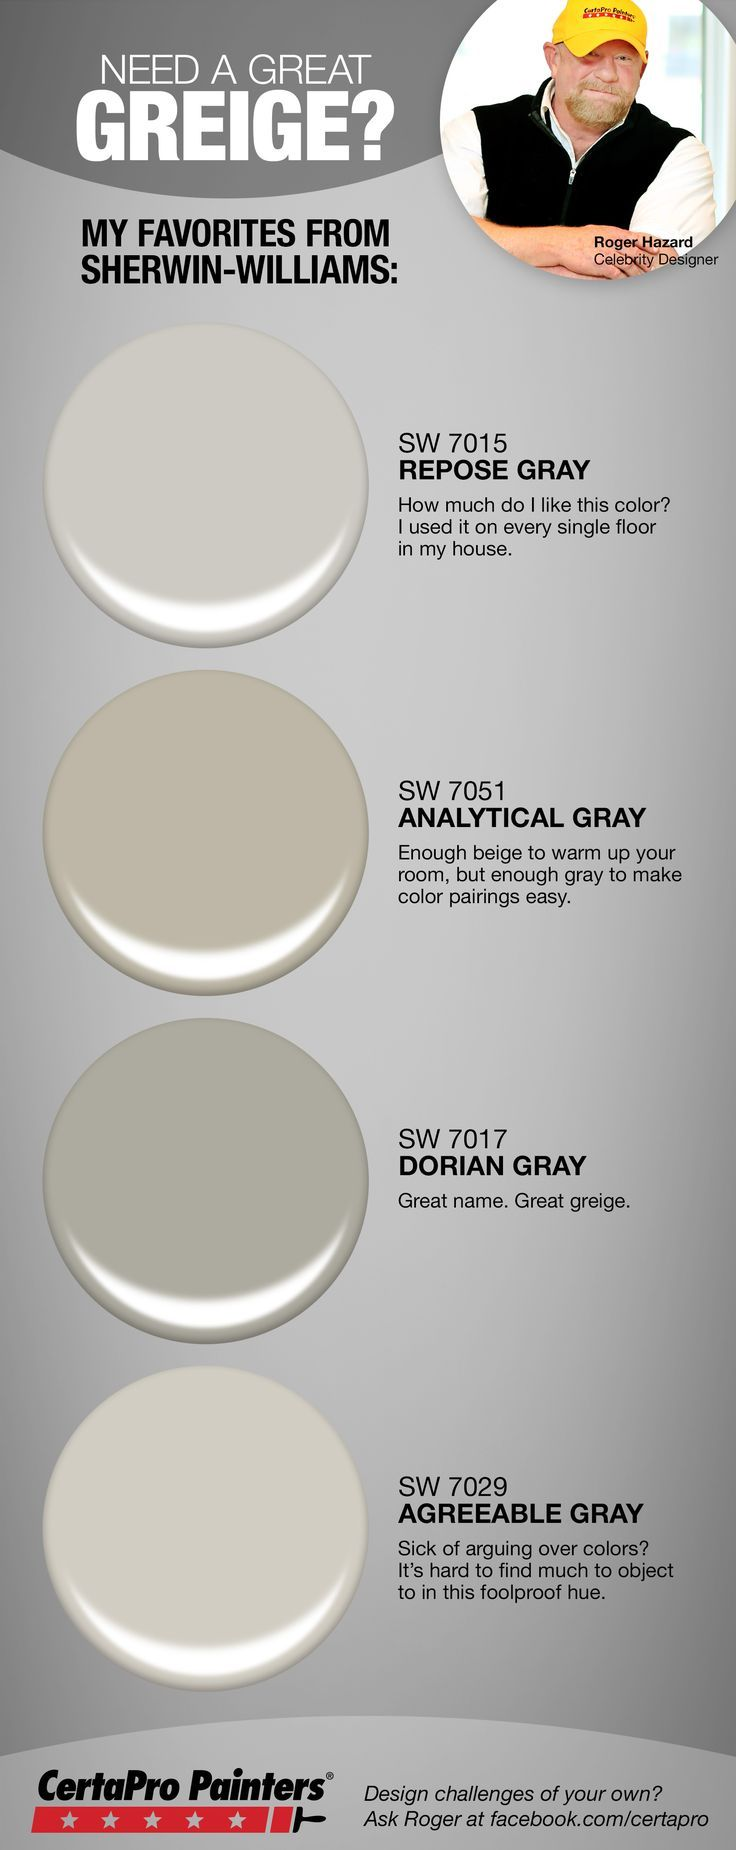 Do you need to use bathroom paint - Looking For The Right Greige Paint For Your Home Designer Roger Hazard Shares His Most Popular Gray Beige Hybrid Paint Colors From Sherwin Williams